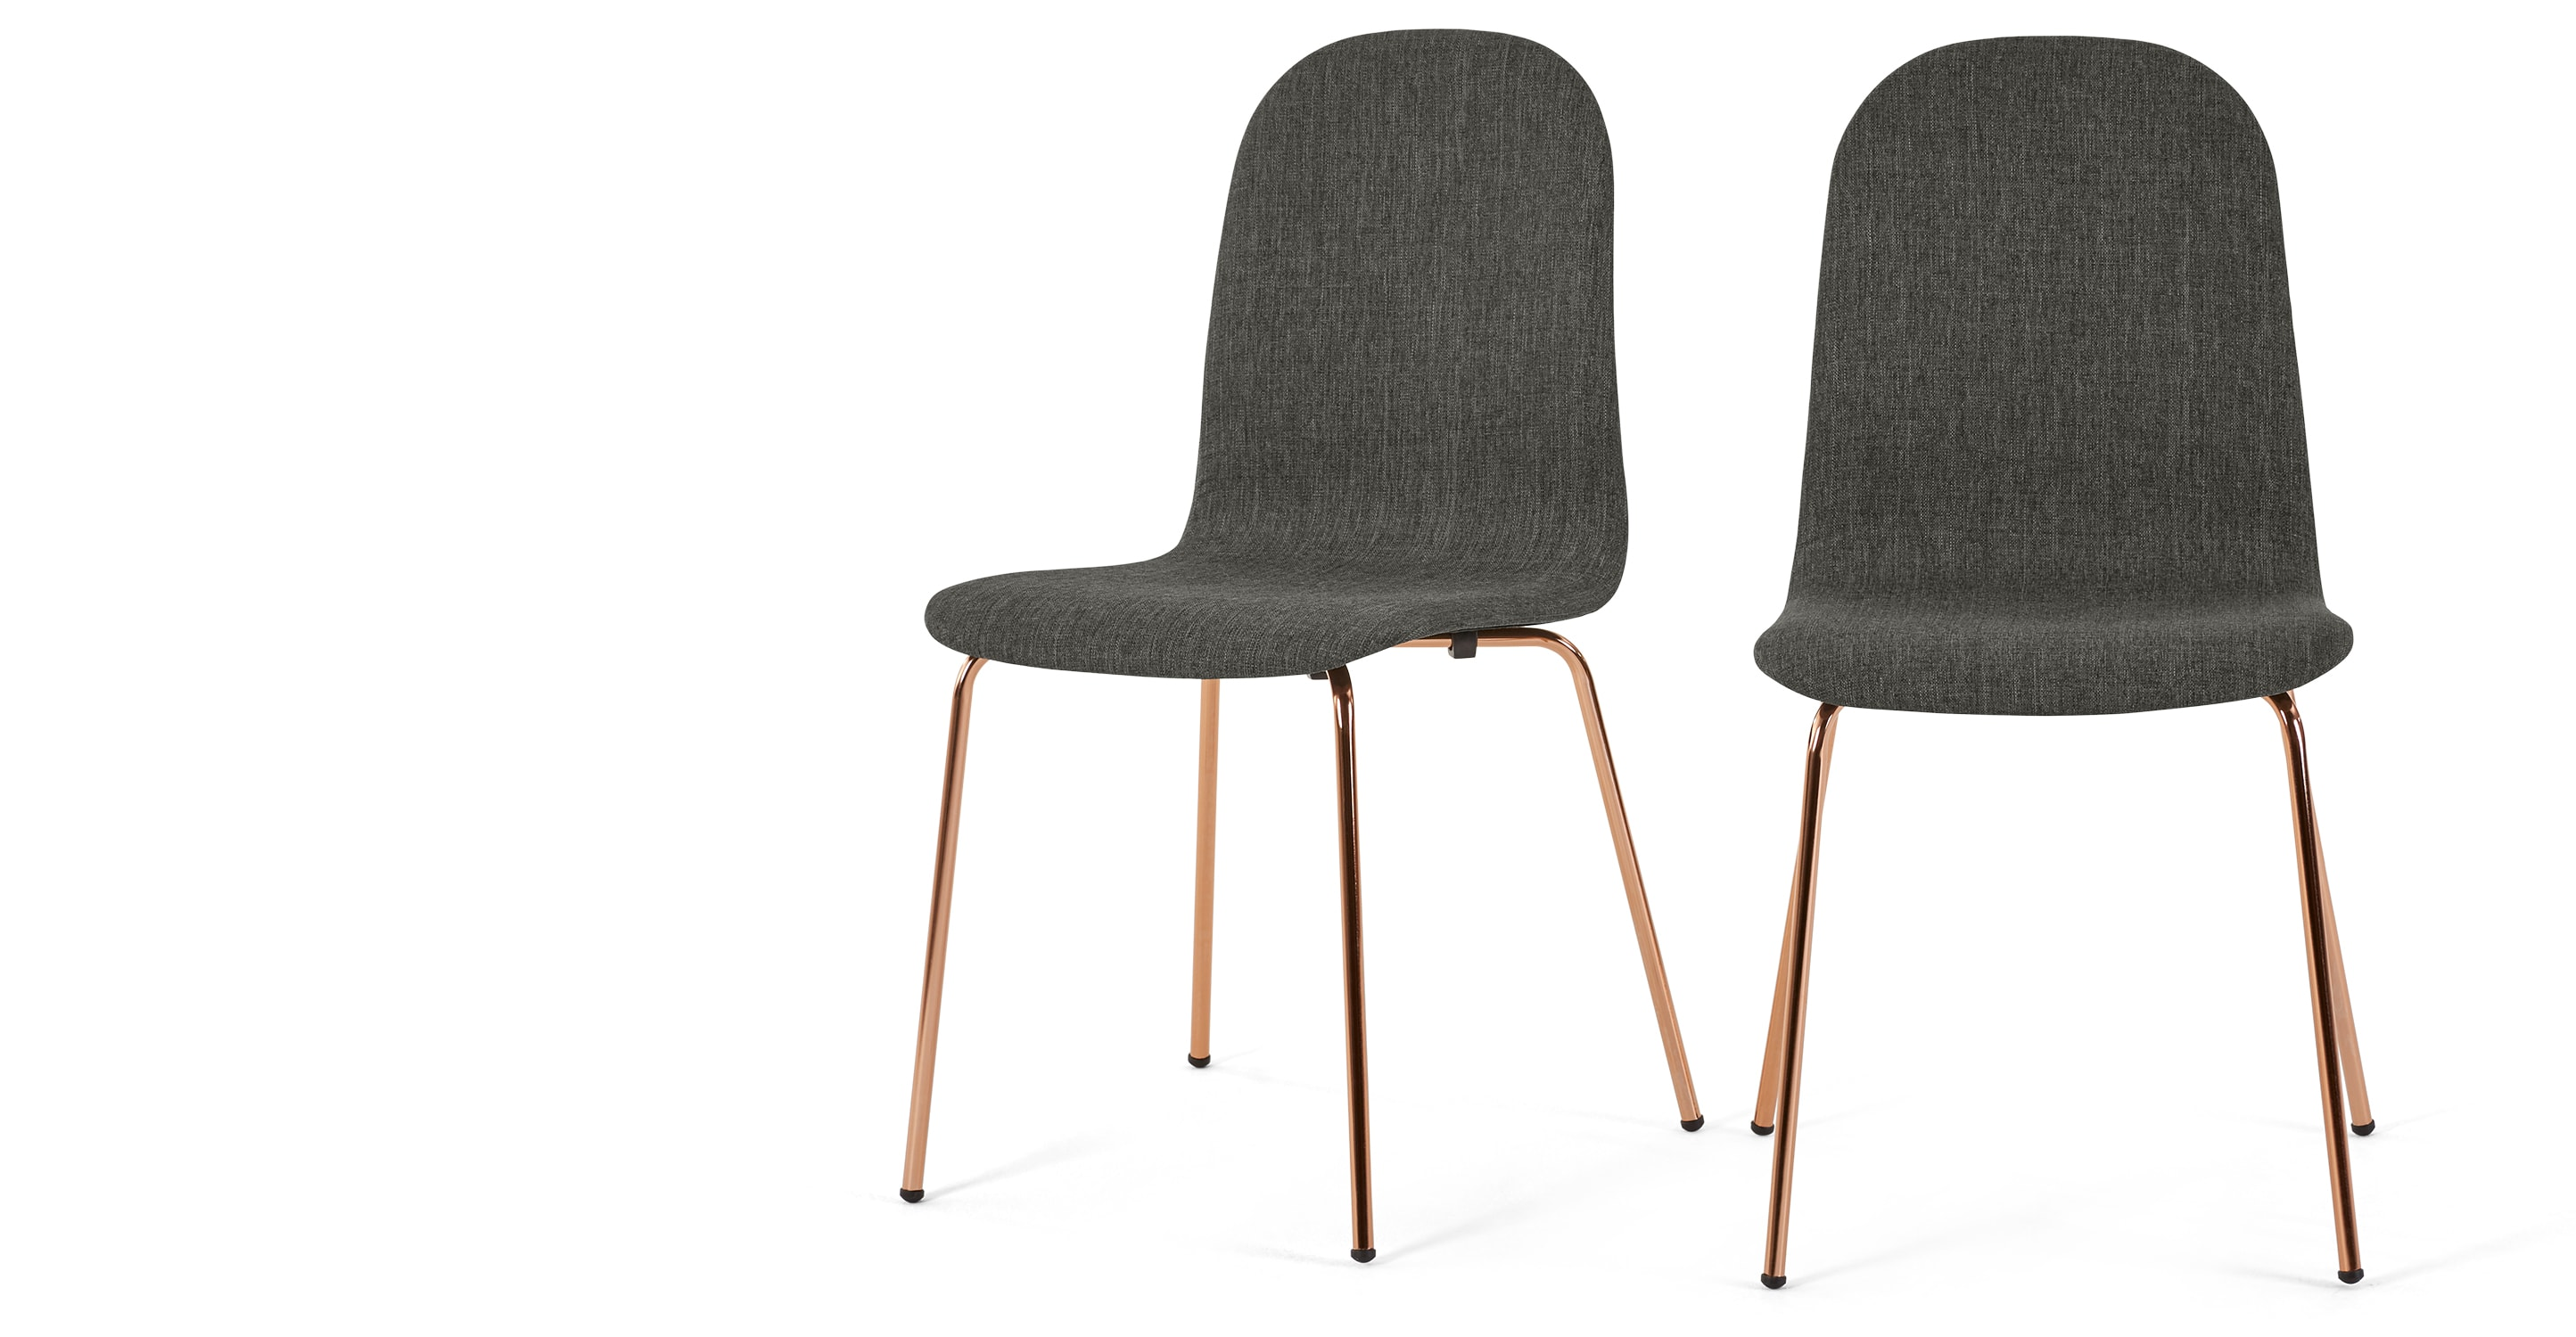 Copper Dining Chairs 2 X Mino Dining Chairs Pavillion Grey And Copper